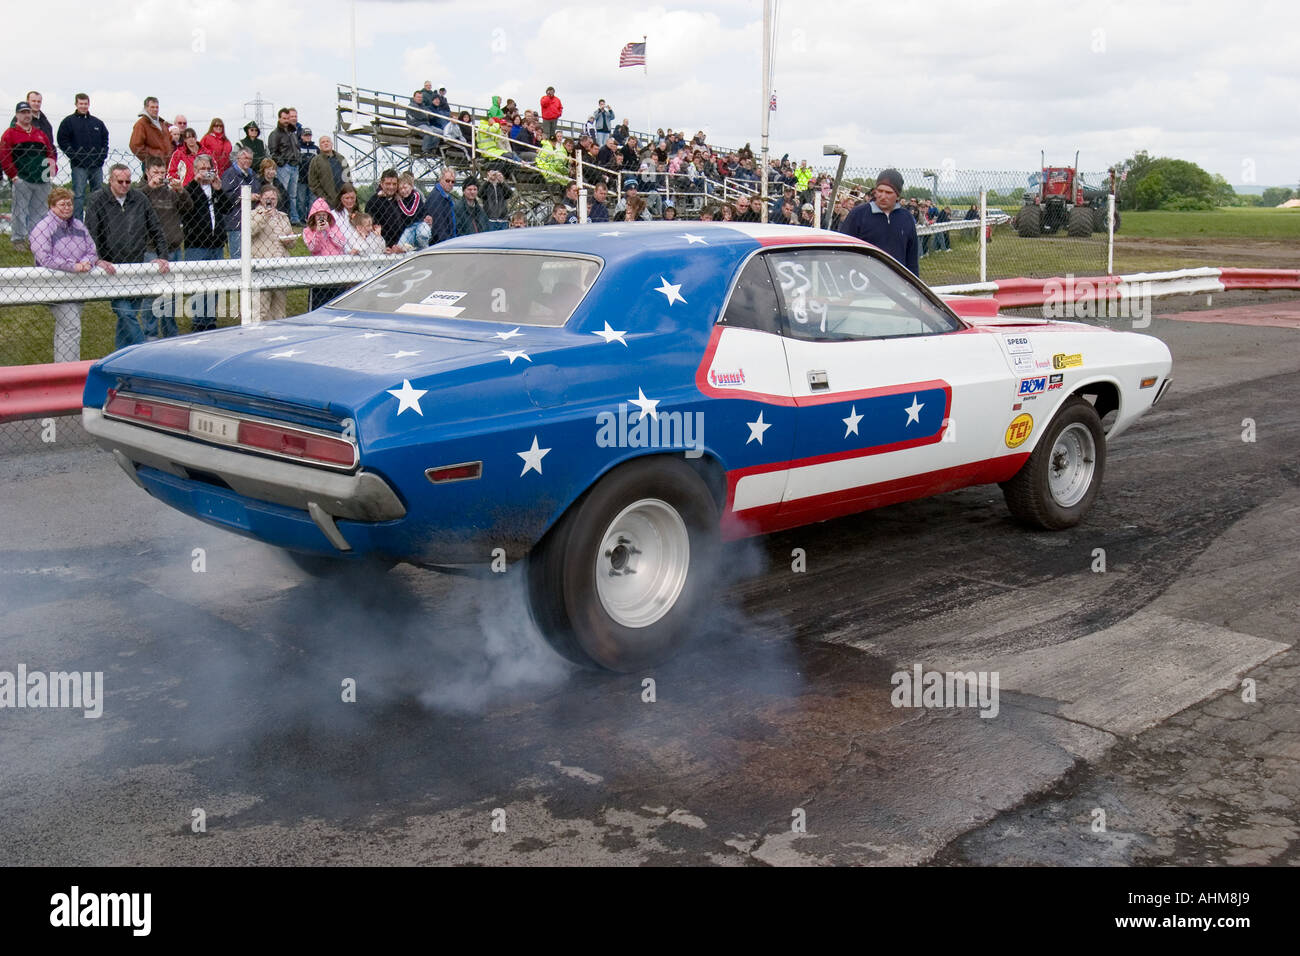 American Muscle Car Doing A Burnout At Drag Race Stock Photo